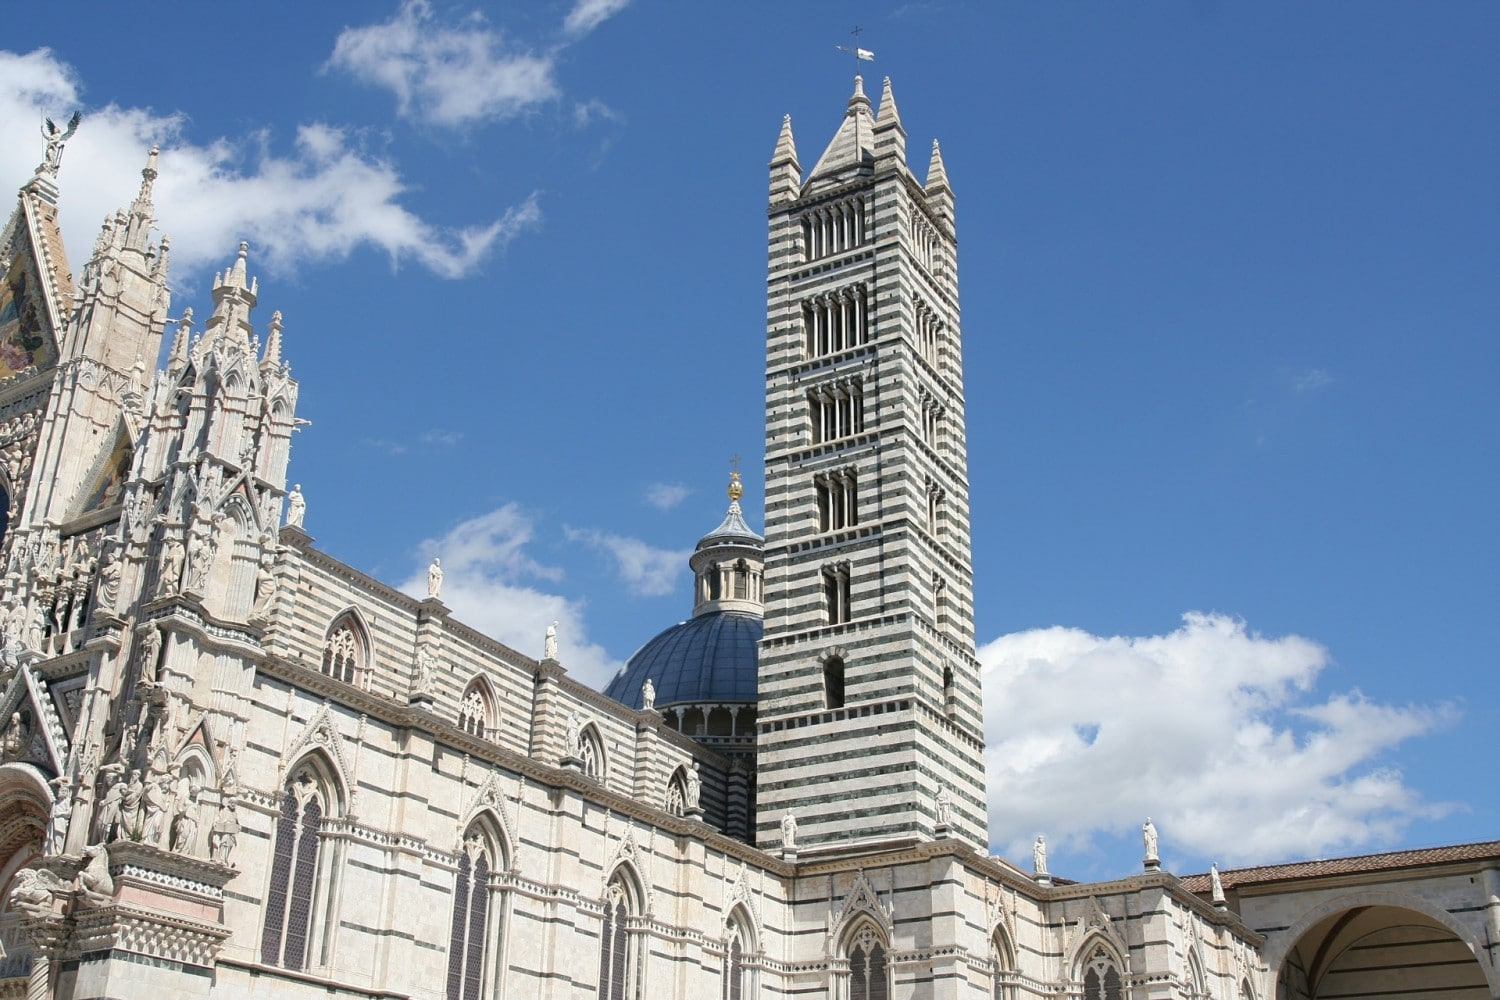 Siena is a great place to stop on your road trip through Italy. Here's why.